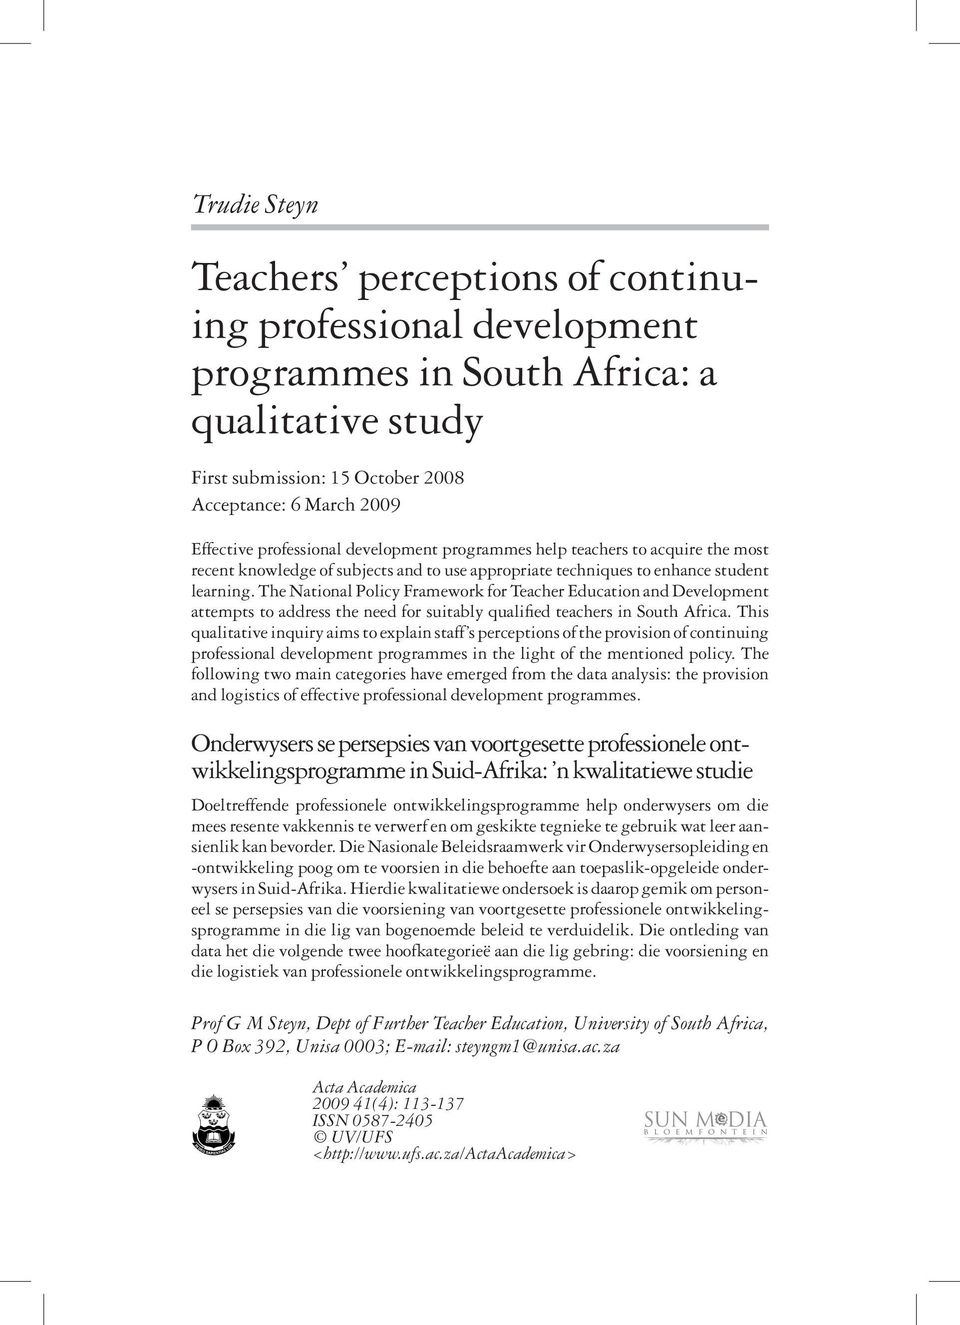 The National Policy Framework for Teacher Education and Development attempts to address the need for suitably qualified teachers in South Africa.